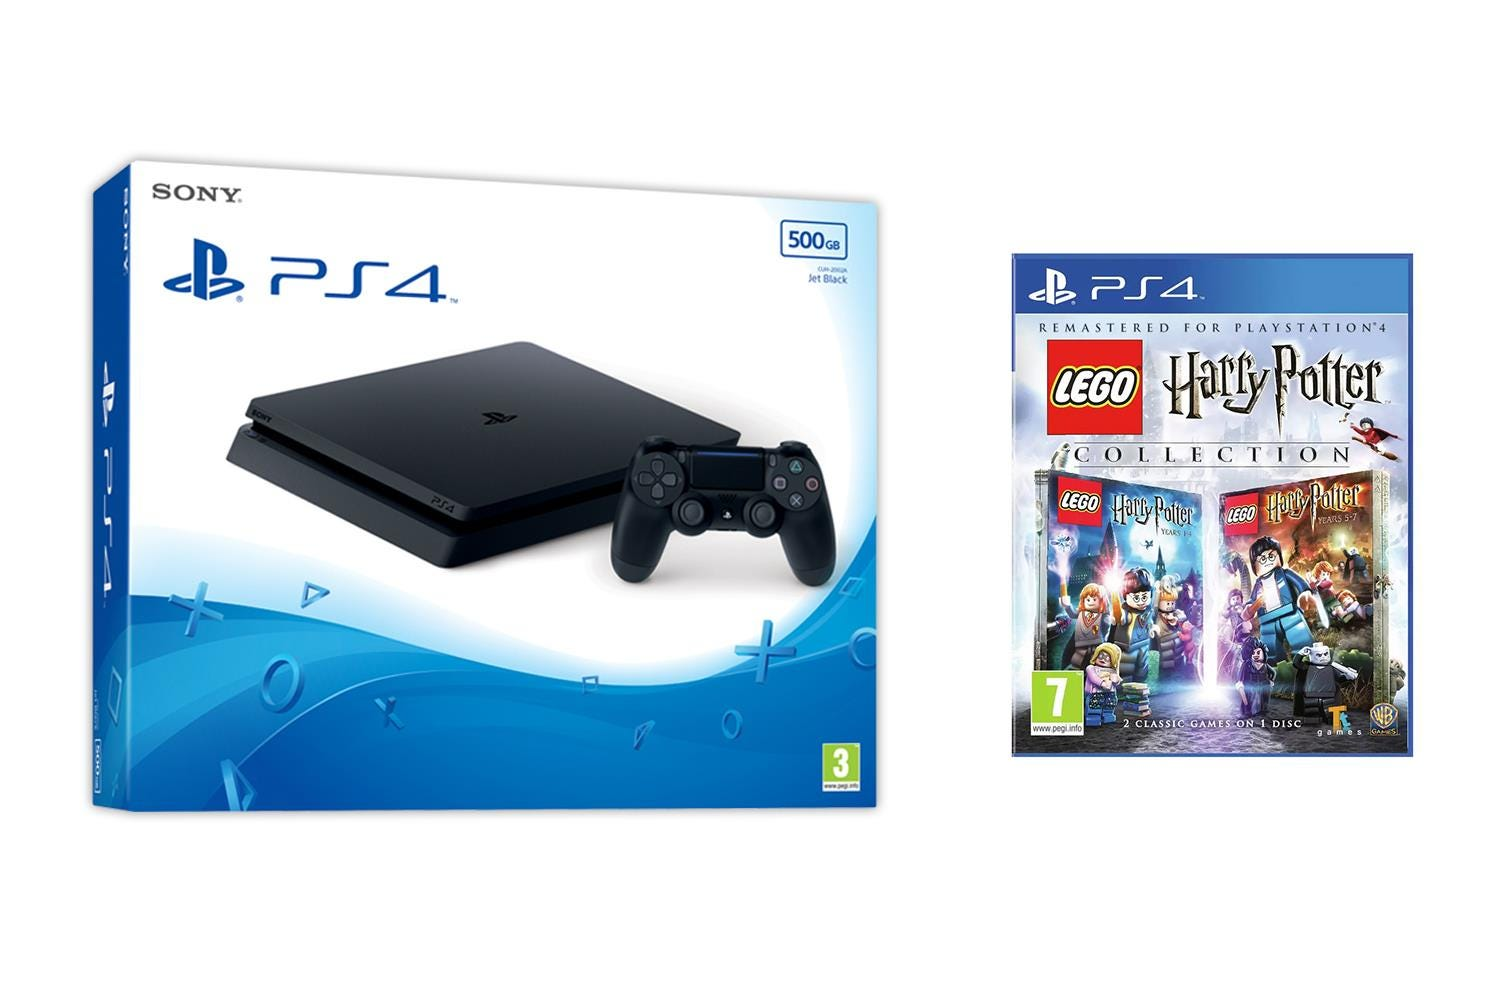 Sony PlayStation 4 500GB Jet Black Console with LEGO Harry Potter Game Collection